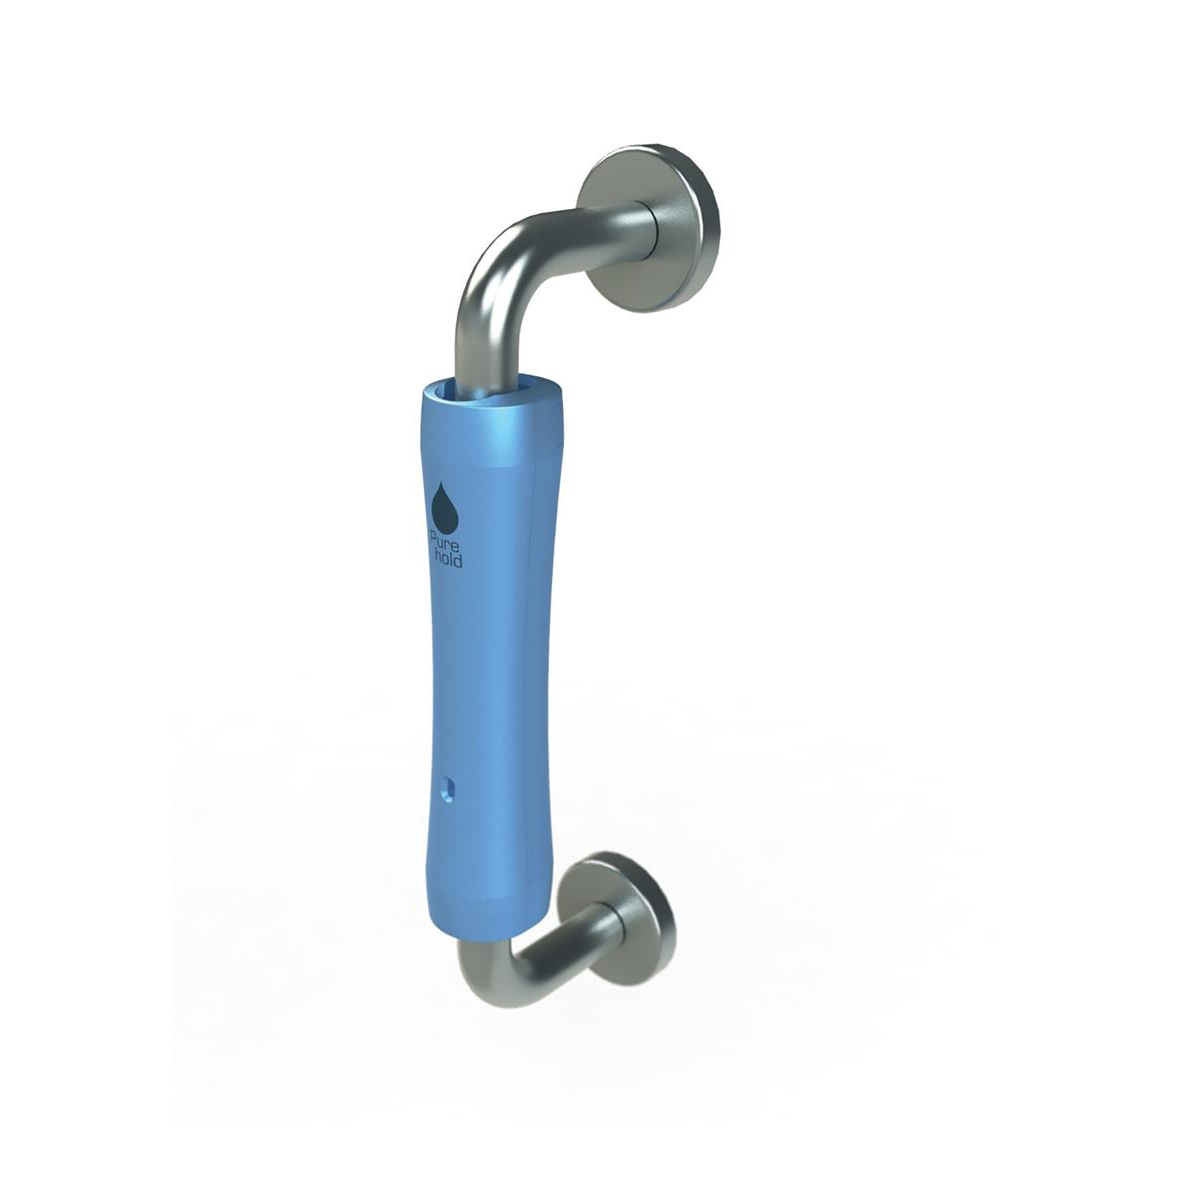 Handles or knobs P-Wave P-Hold Door Handle Cover Antibacterial 6 Months Protection Ice Blue Ref WZPH20ICE